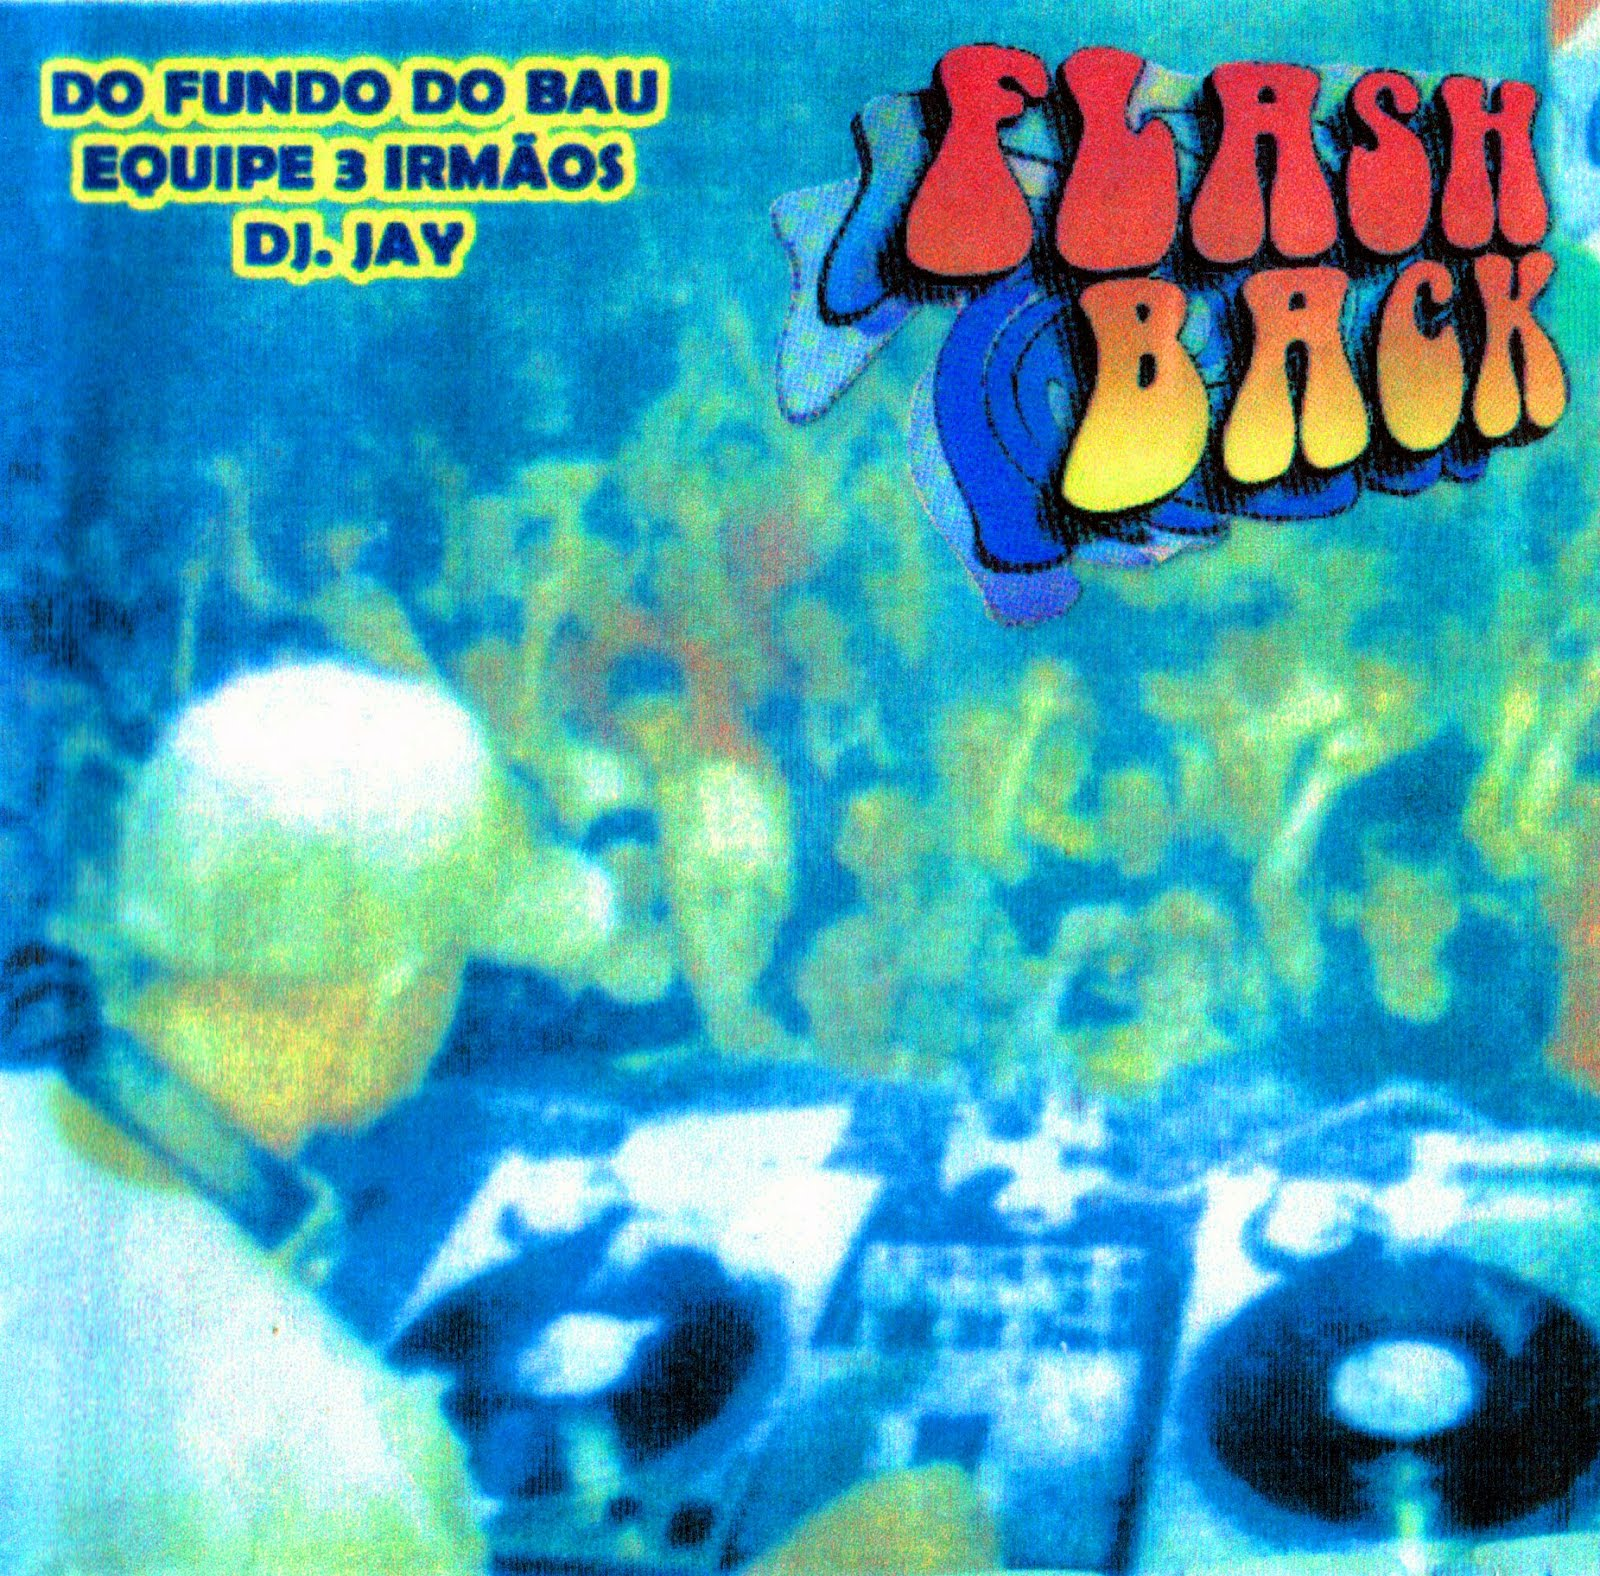 FLASH BLACK DO FUNDO DO BAU DJ .JAY